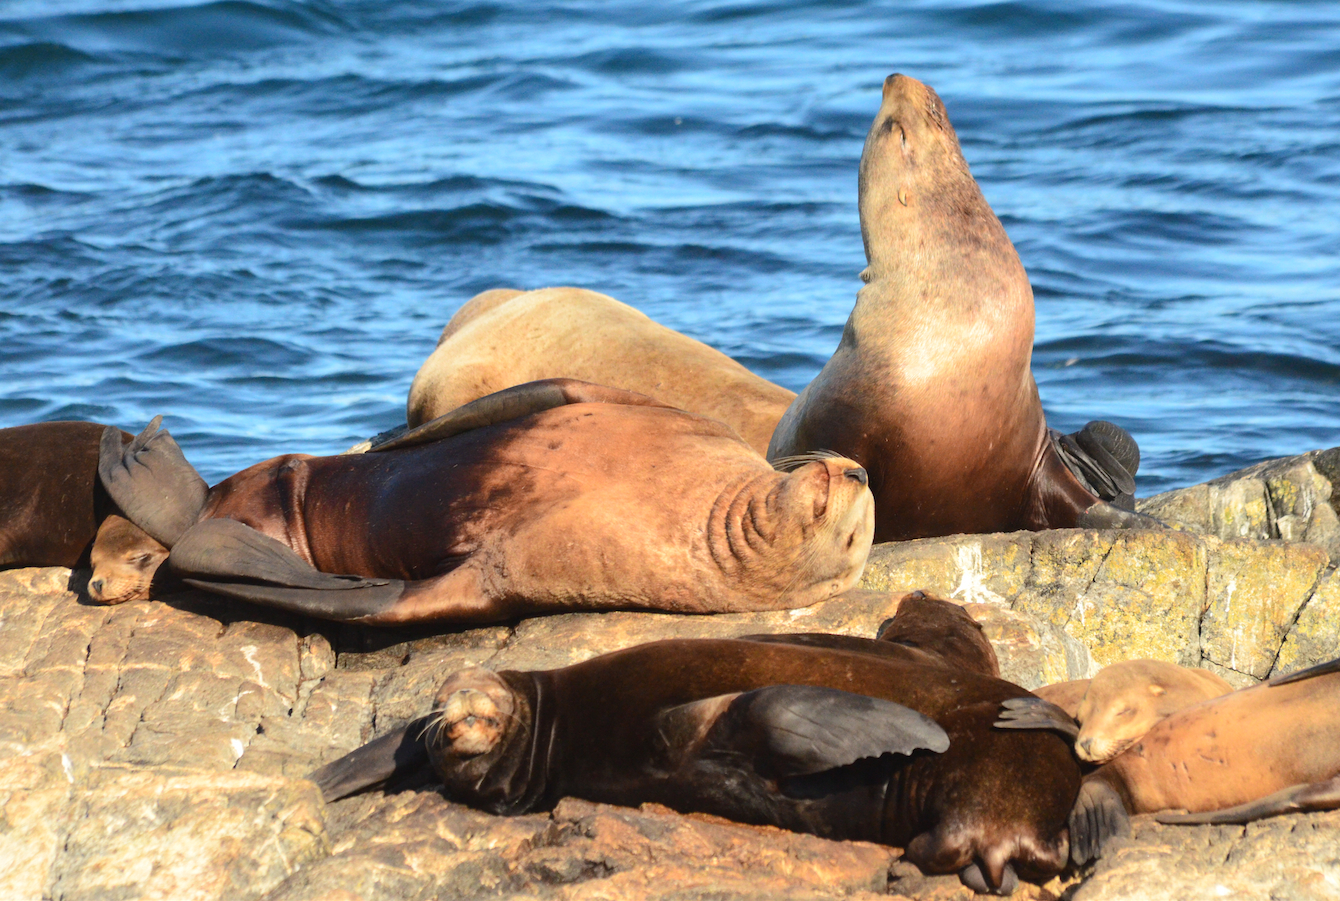 Both species of sea lions rest and sleep next to and on top of each other.